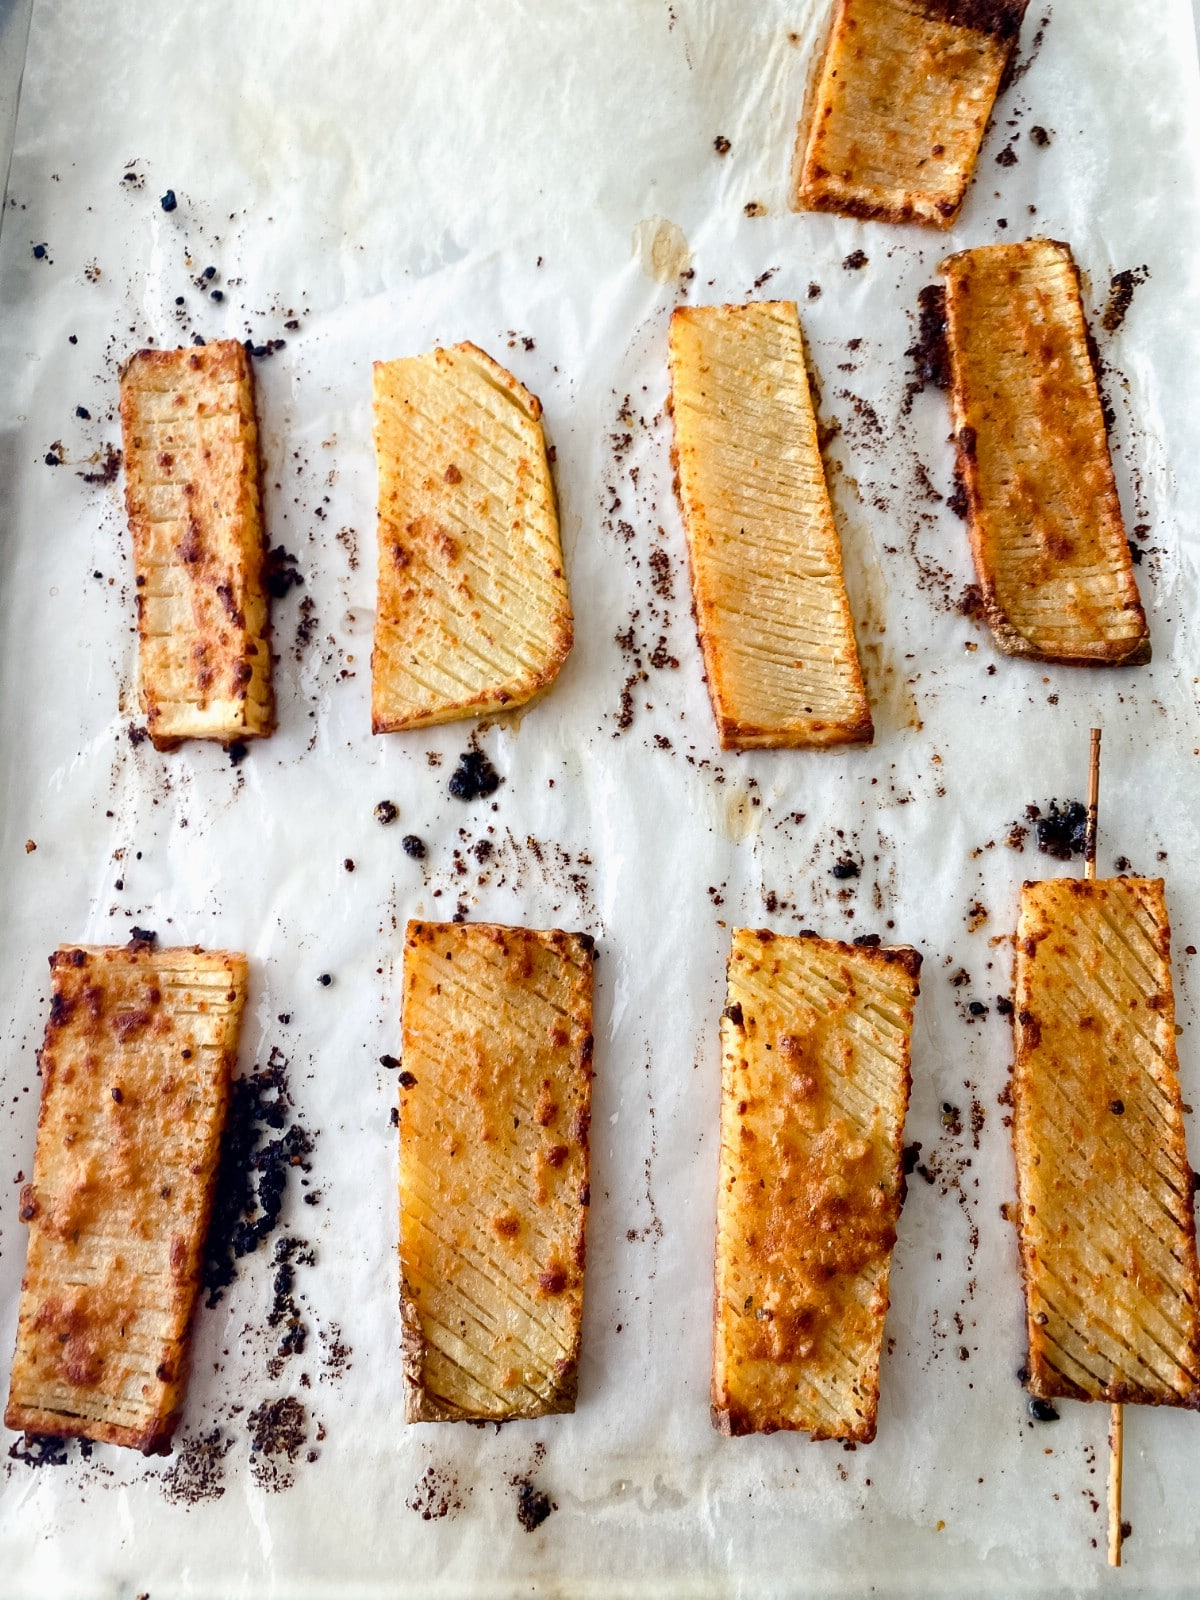 Browned potato slices on baking sheet